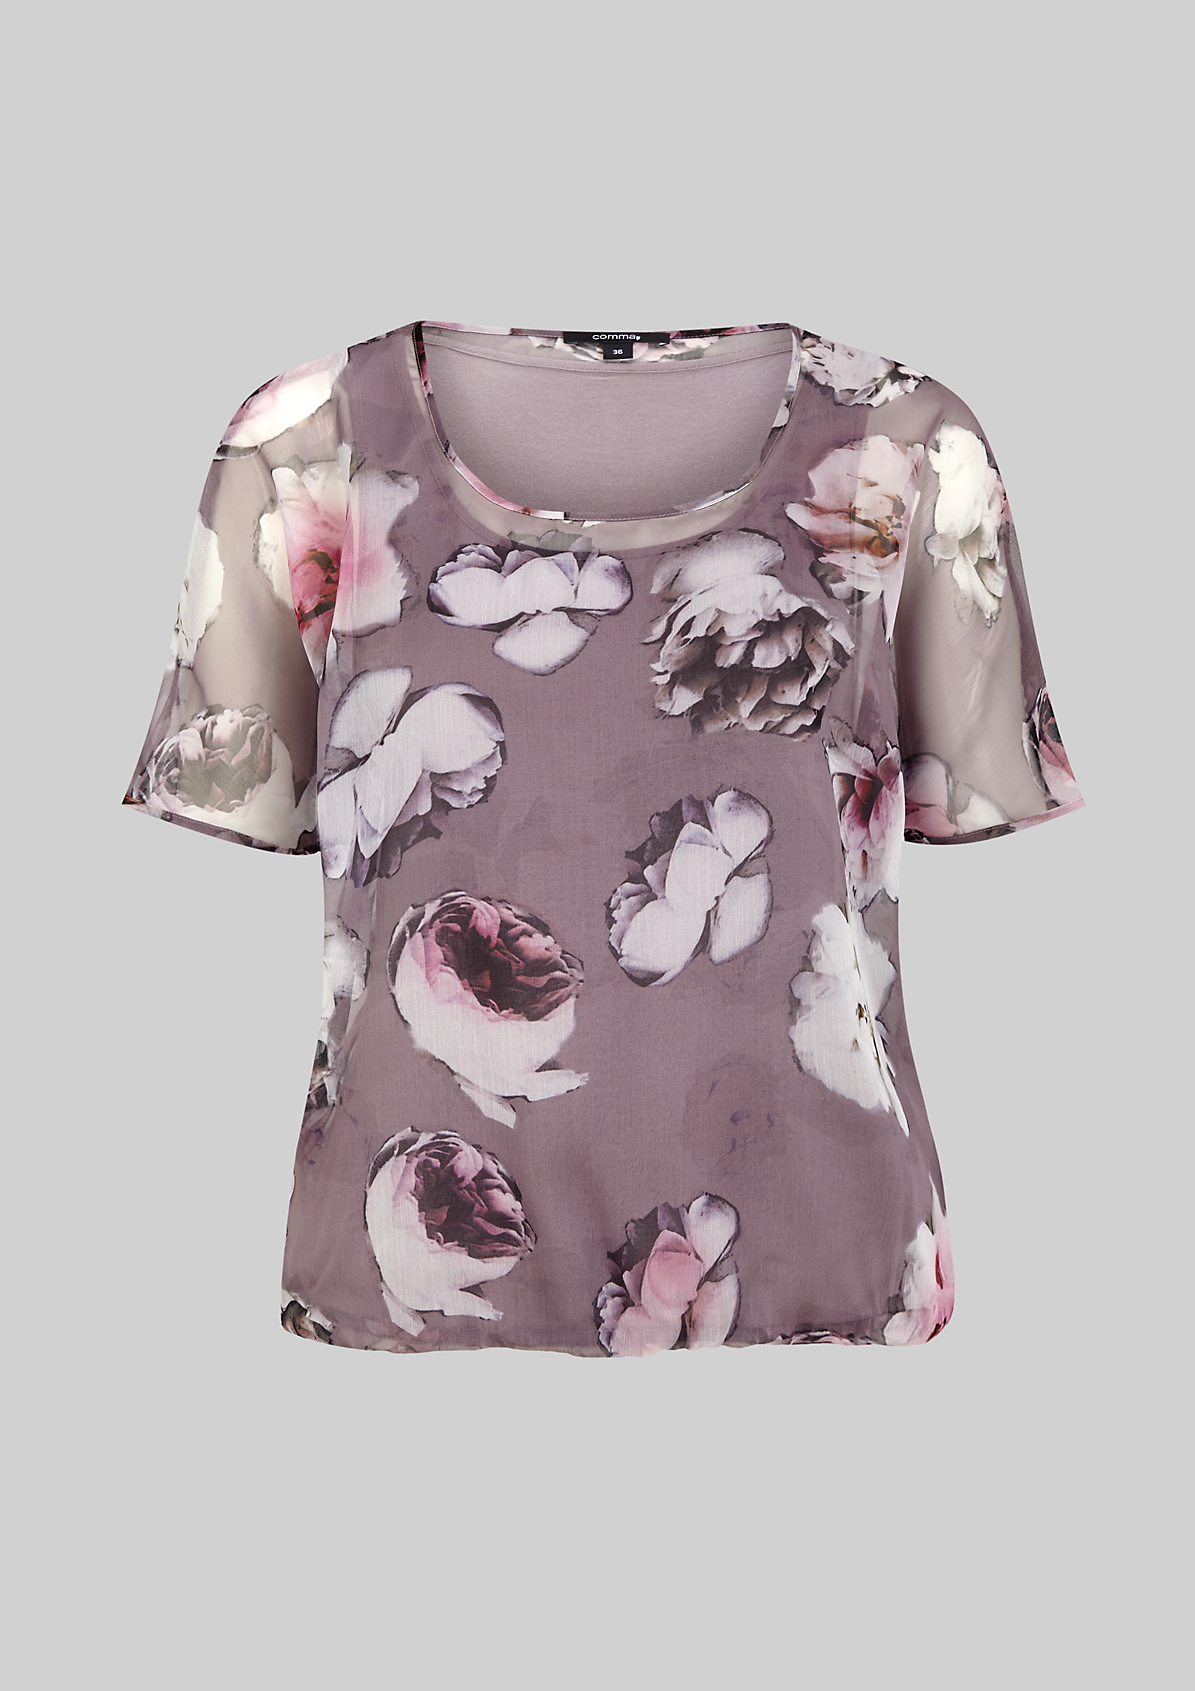 Semitransparente Chiffonbluse mit aufregendem Alloverprint